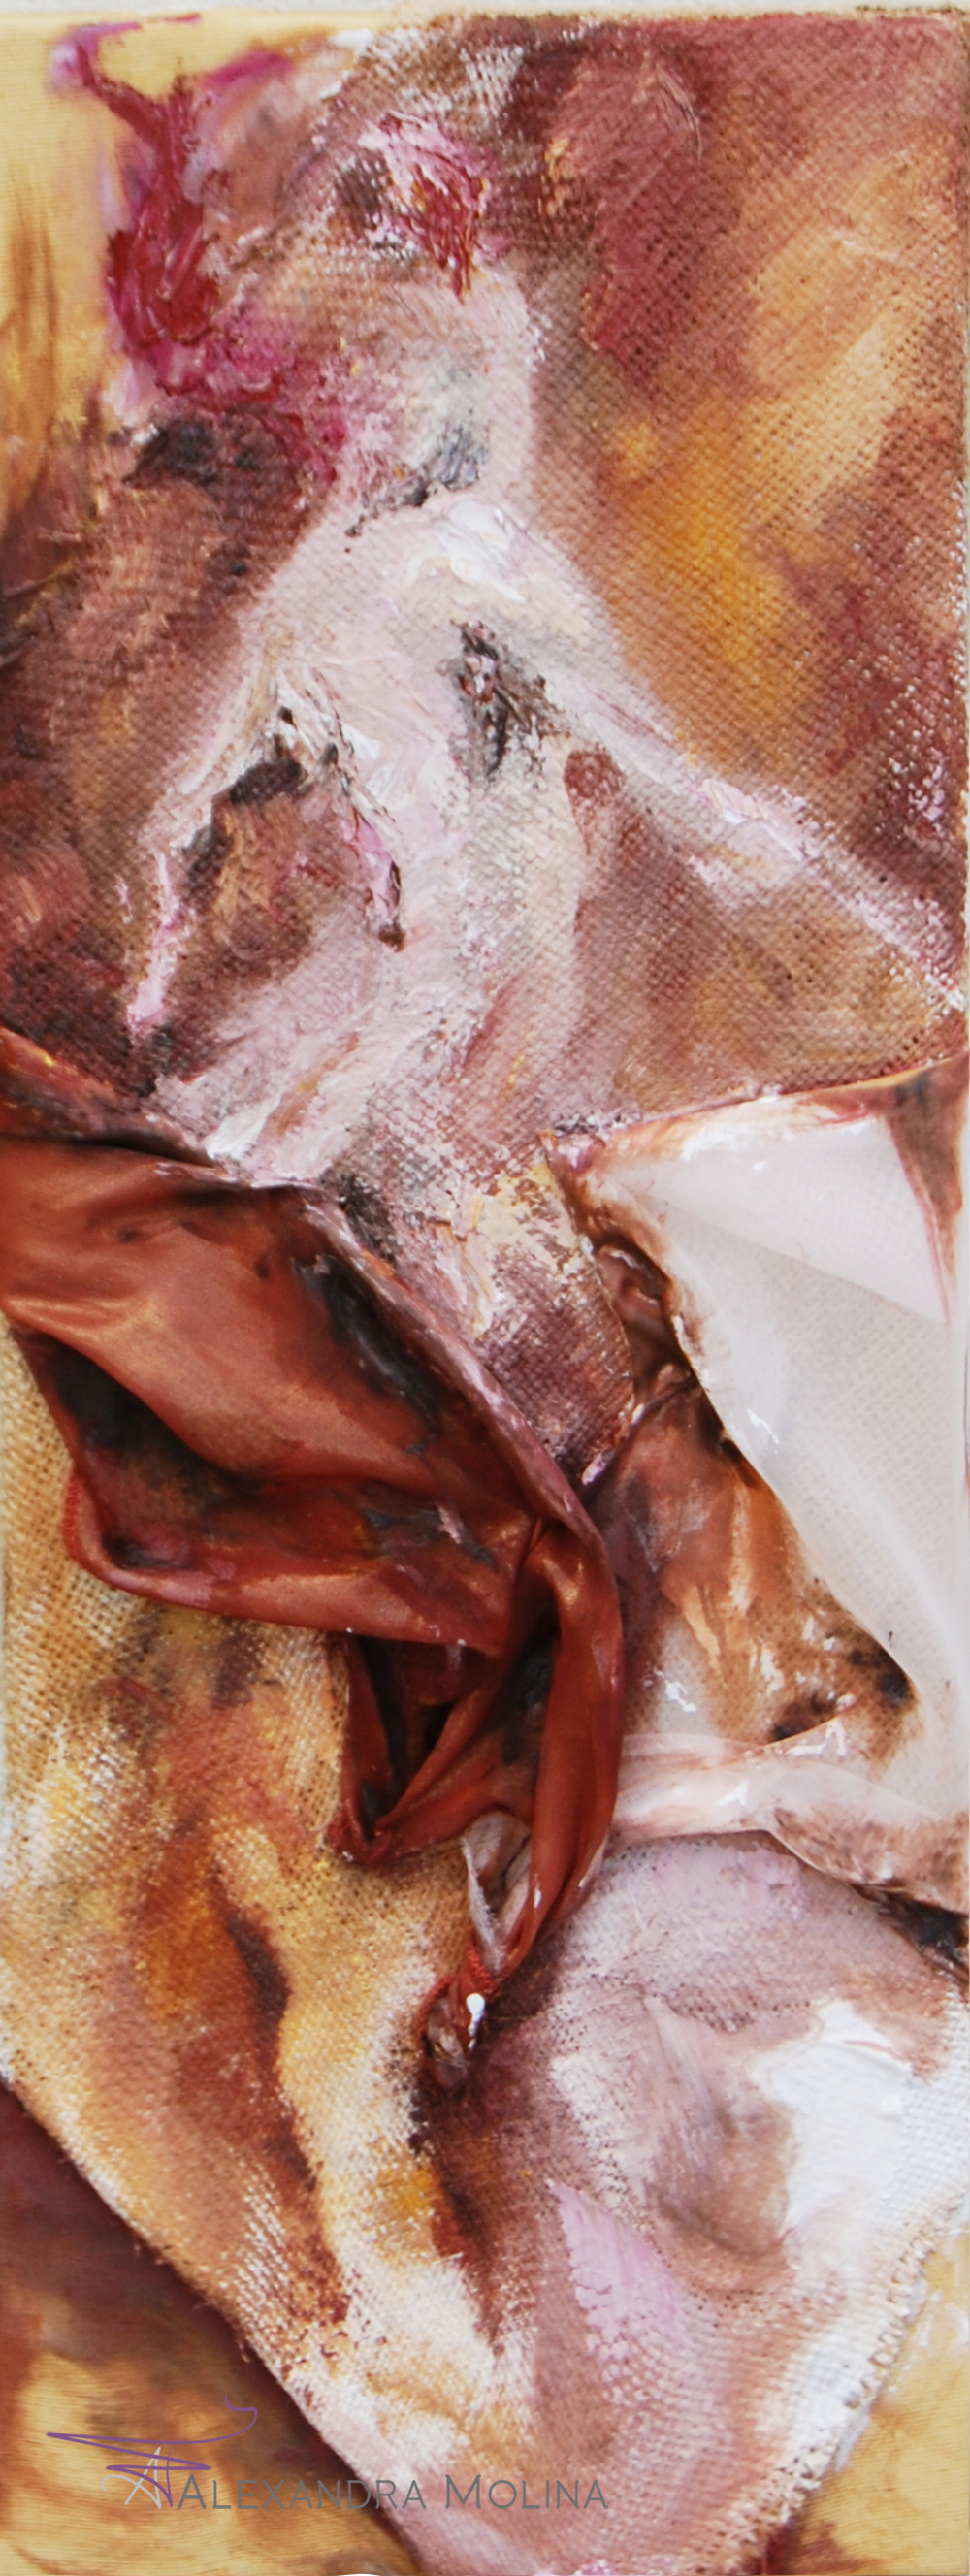 Rose Coquette, 2012    Oil on fabric sewn together  Private Collection